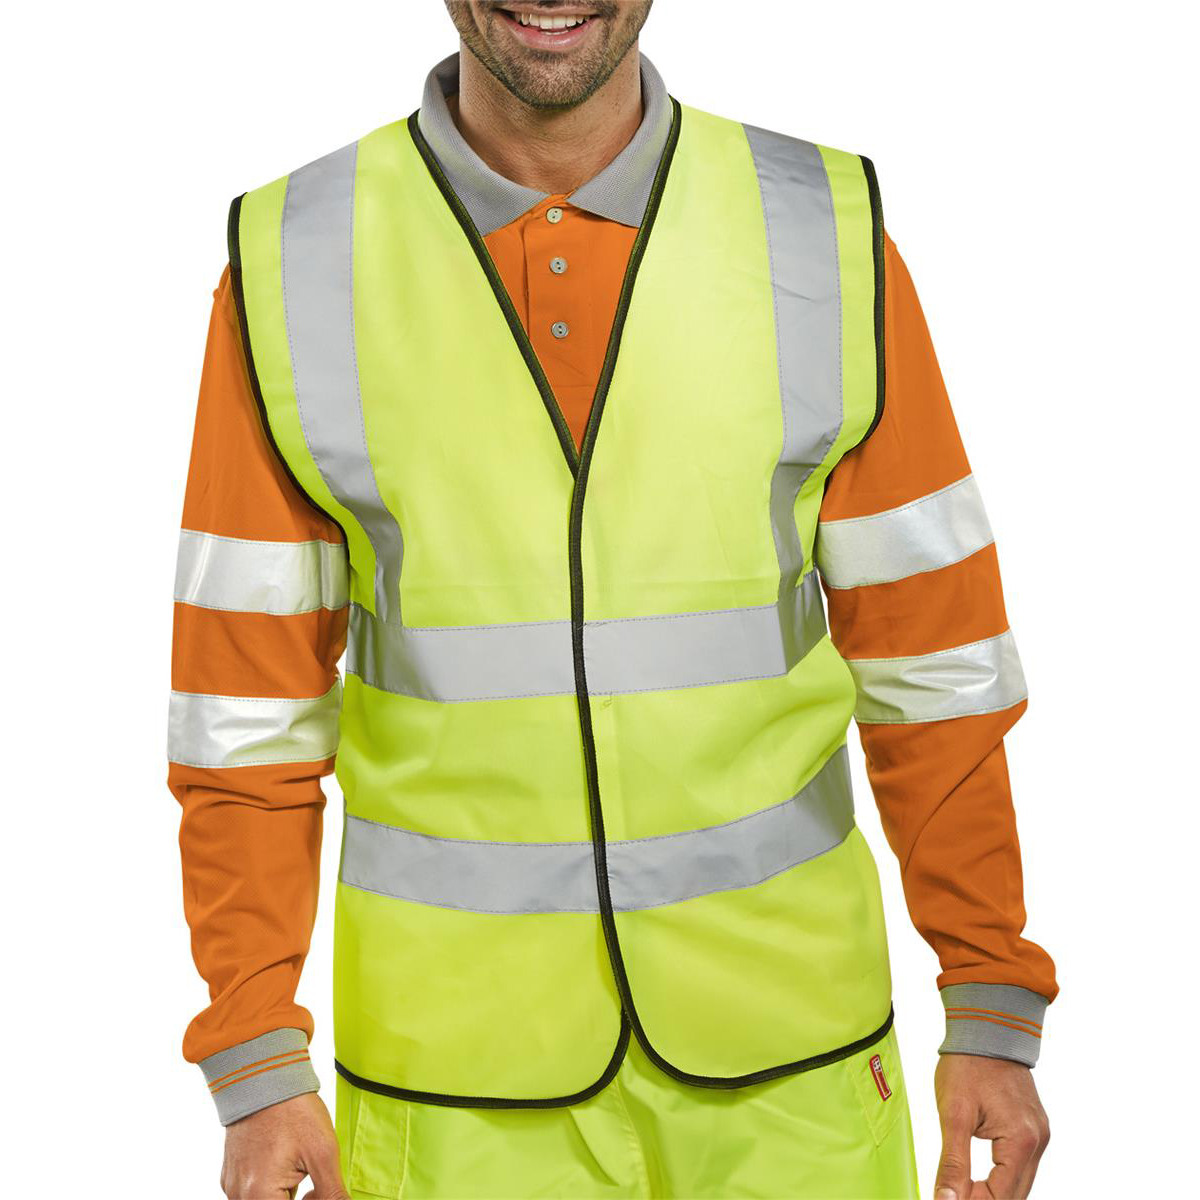 Bodywarmers Bseen High Visibility Waistcoat Full App 2XL Yellow/Black Piping Ref WCENGXXL *Up to 3 Day Leadtime*